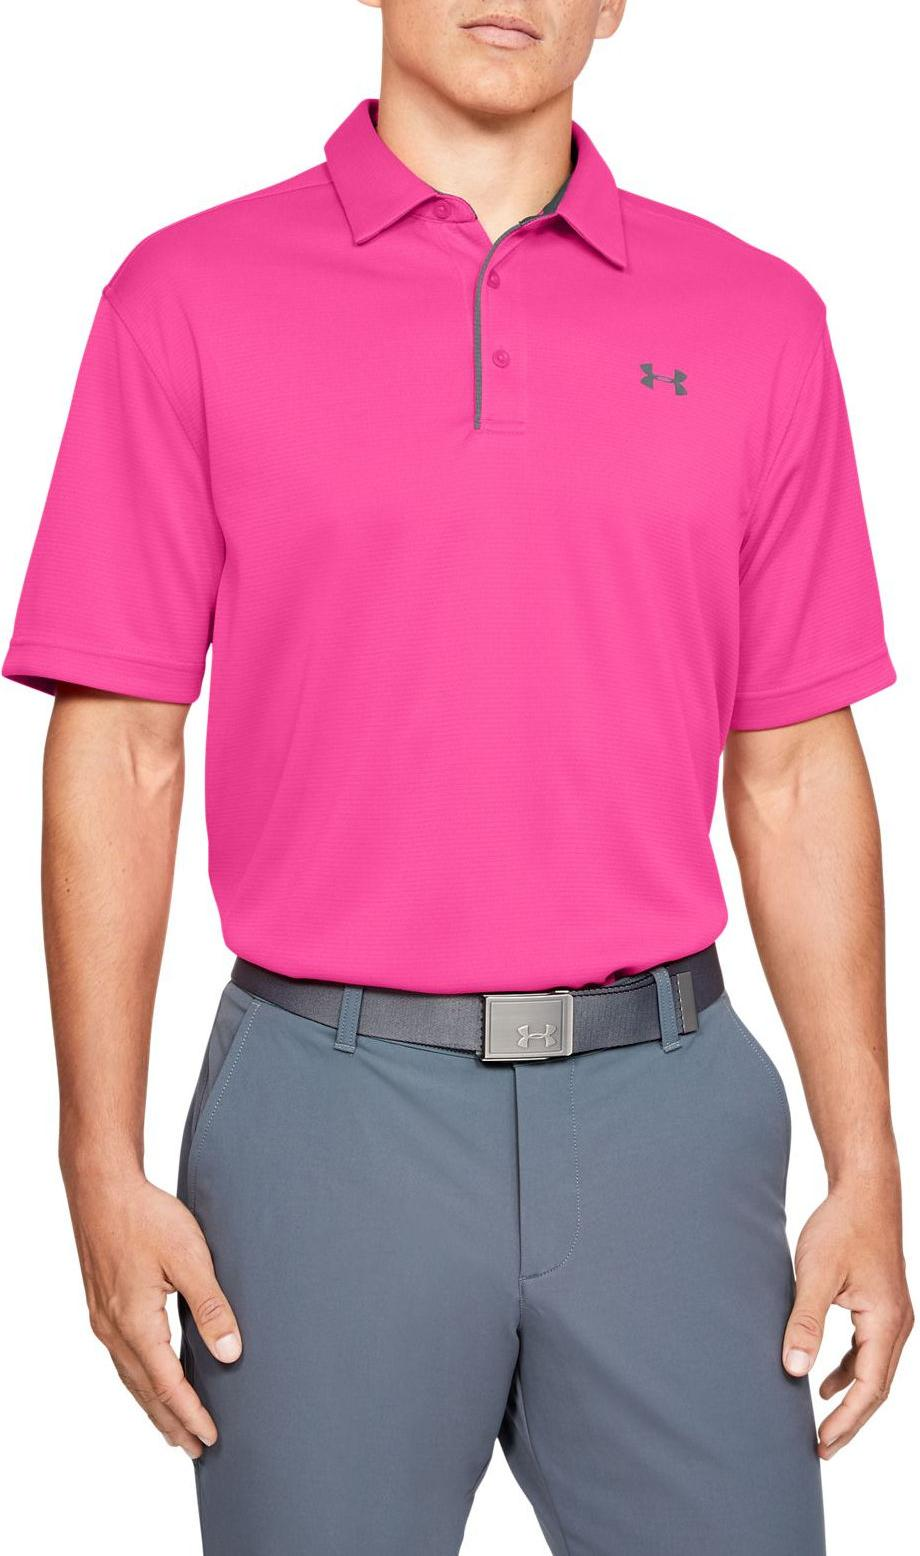 Men's Under Armour Pink Surge SS Polo Shirt, 1290140 687